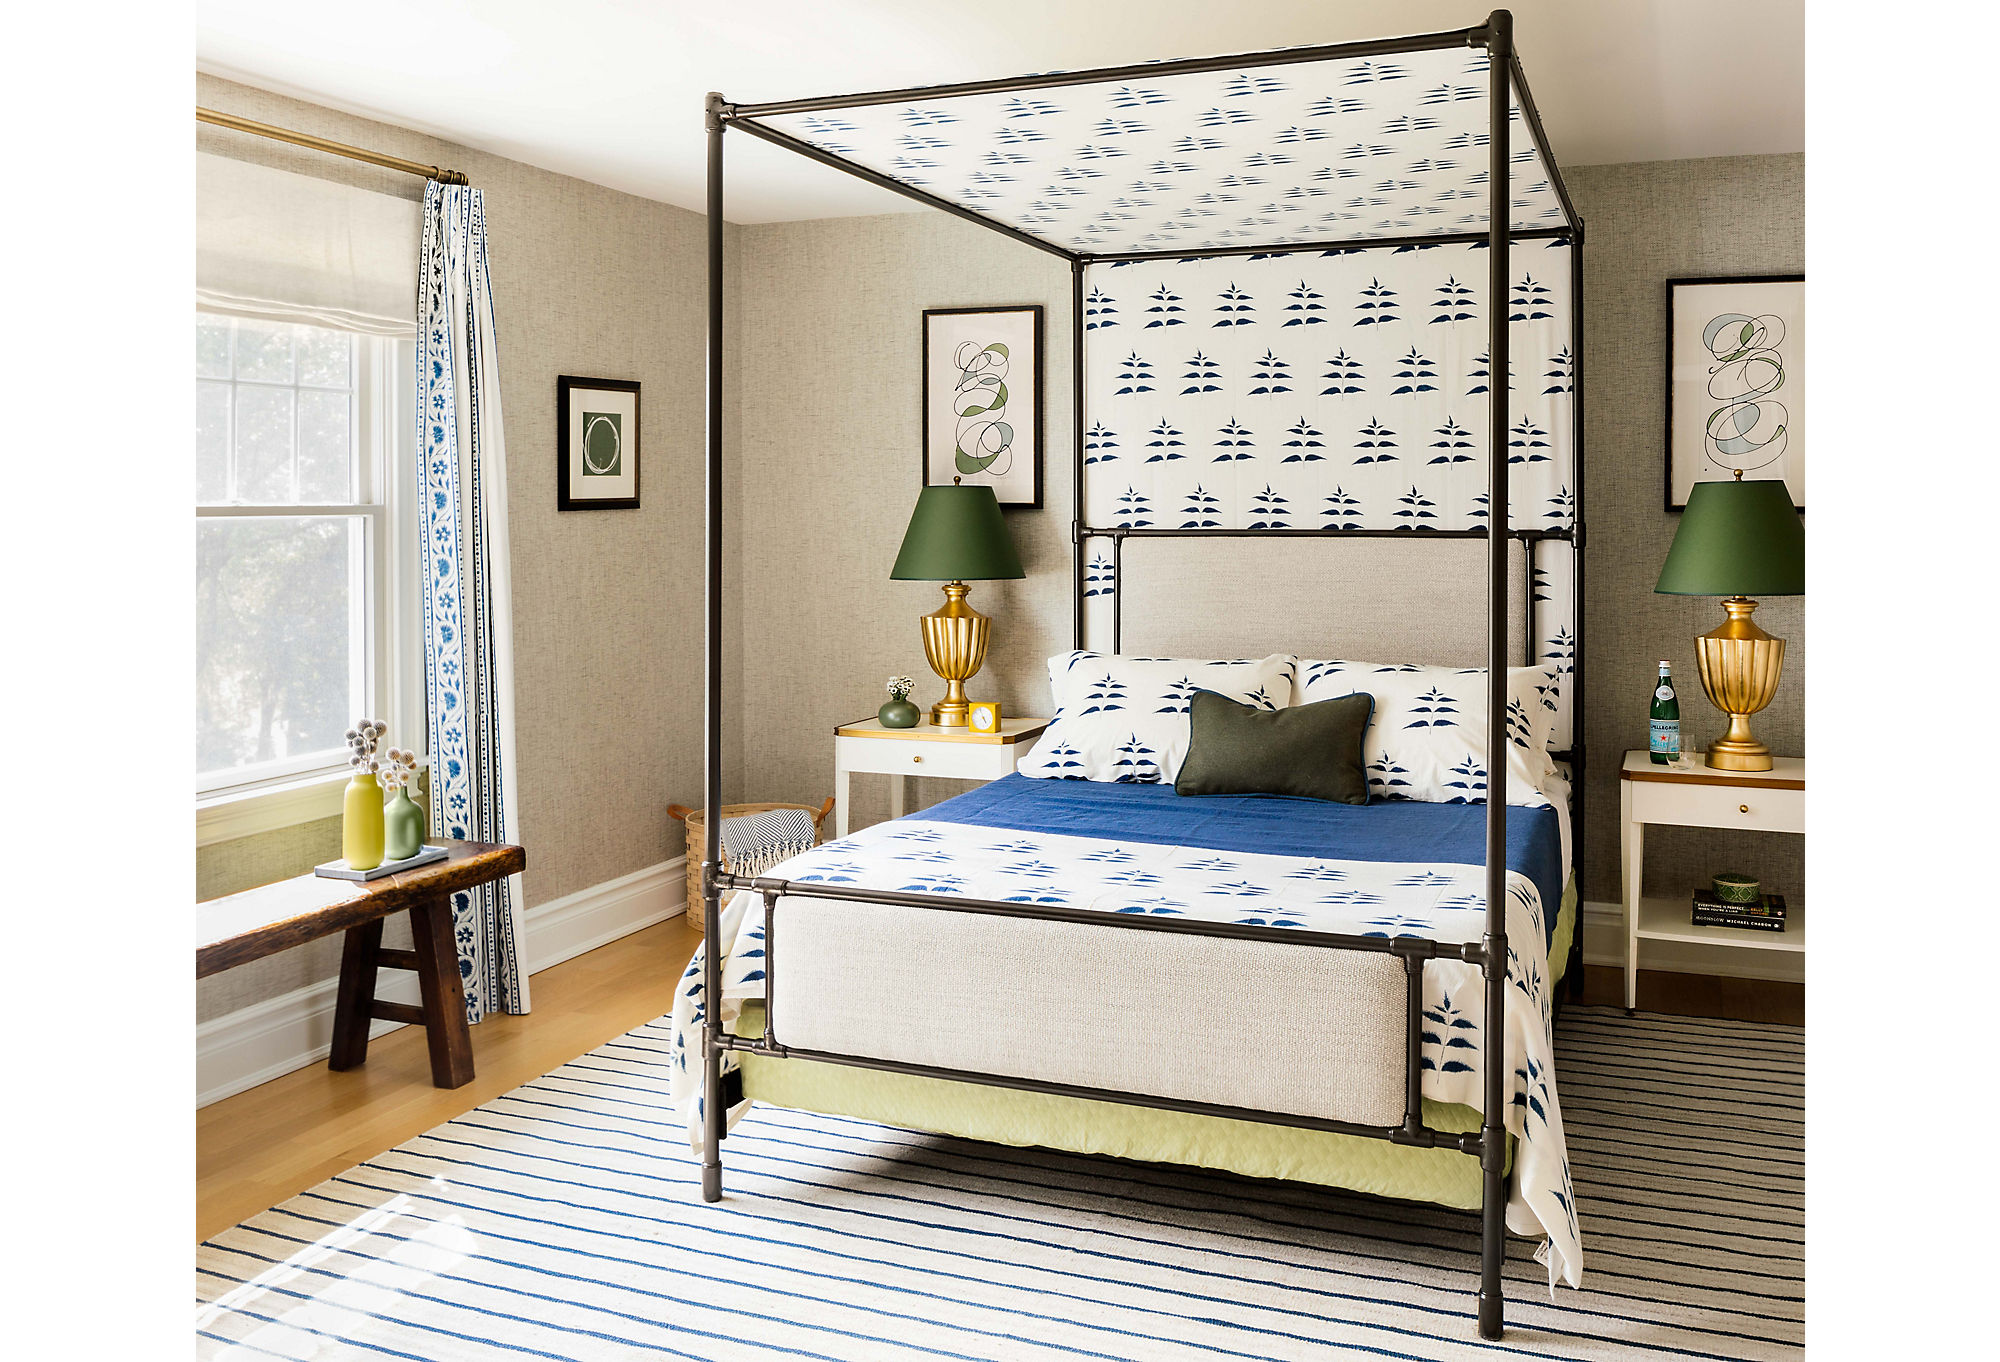 Pattern takes center stage in the guest room. The bed is draped in fabric from Les Indiennes. Gold table lamps add a pop of metallic brilliance.